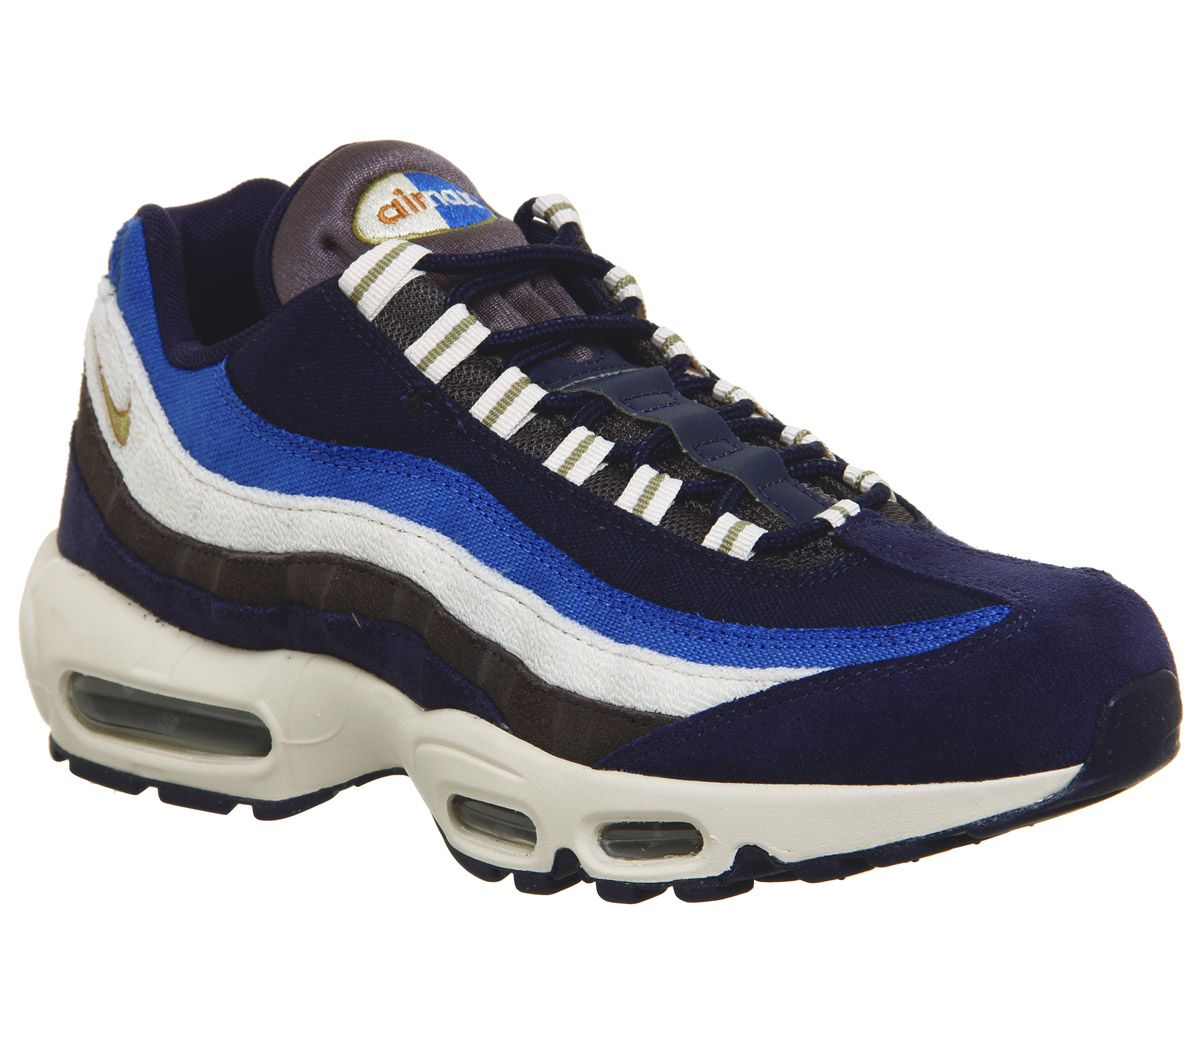 930bccc40b Nike Air Max 95 Trainers Blackened Blue - His trainers